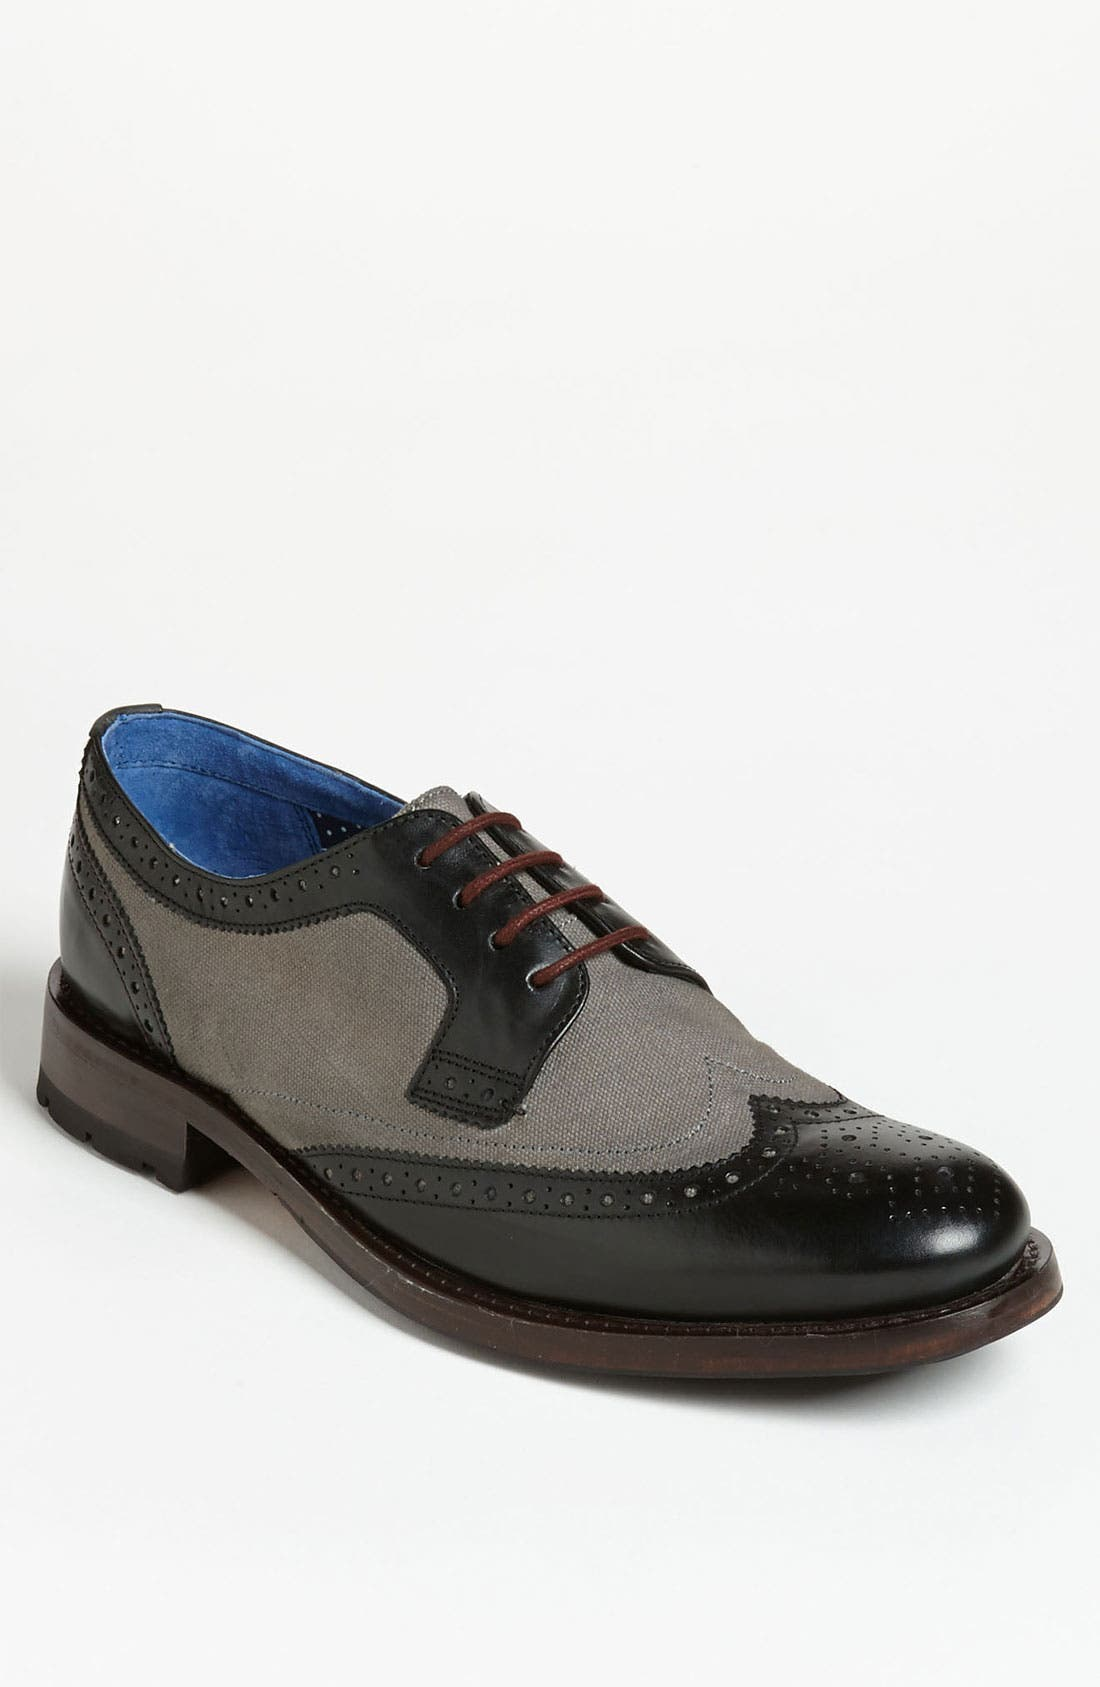 Main Image - Ted Baker London 'Cassiuss' Spectator Shoe